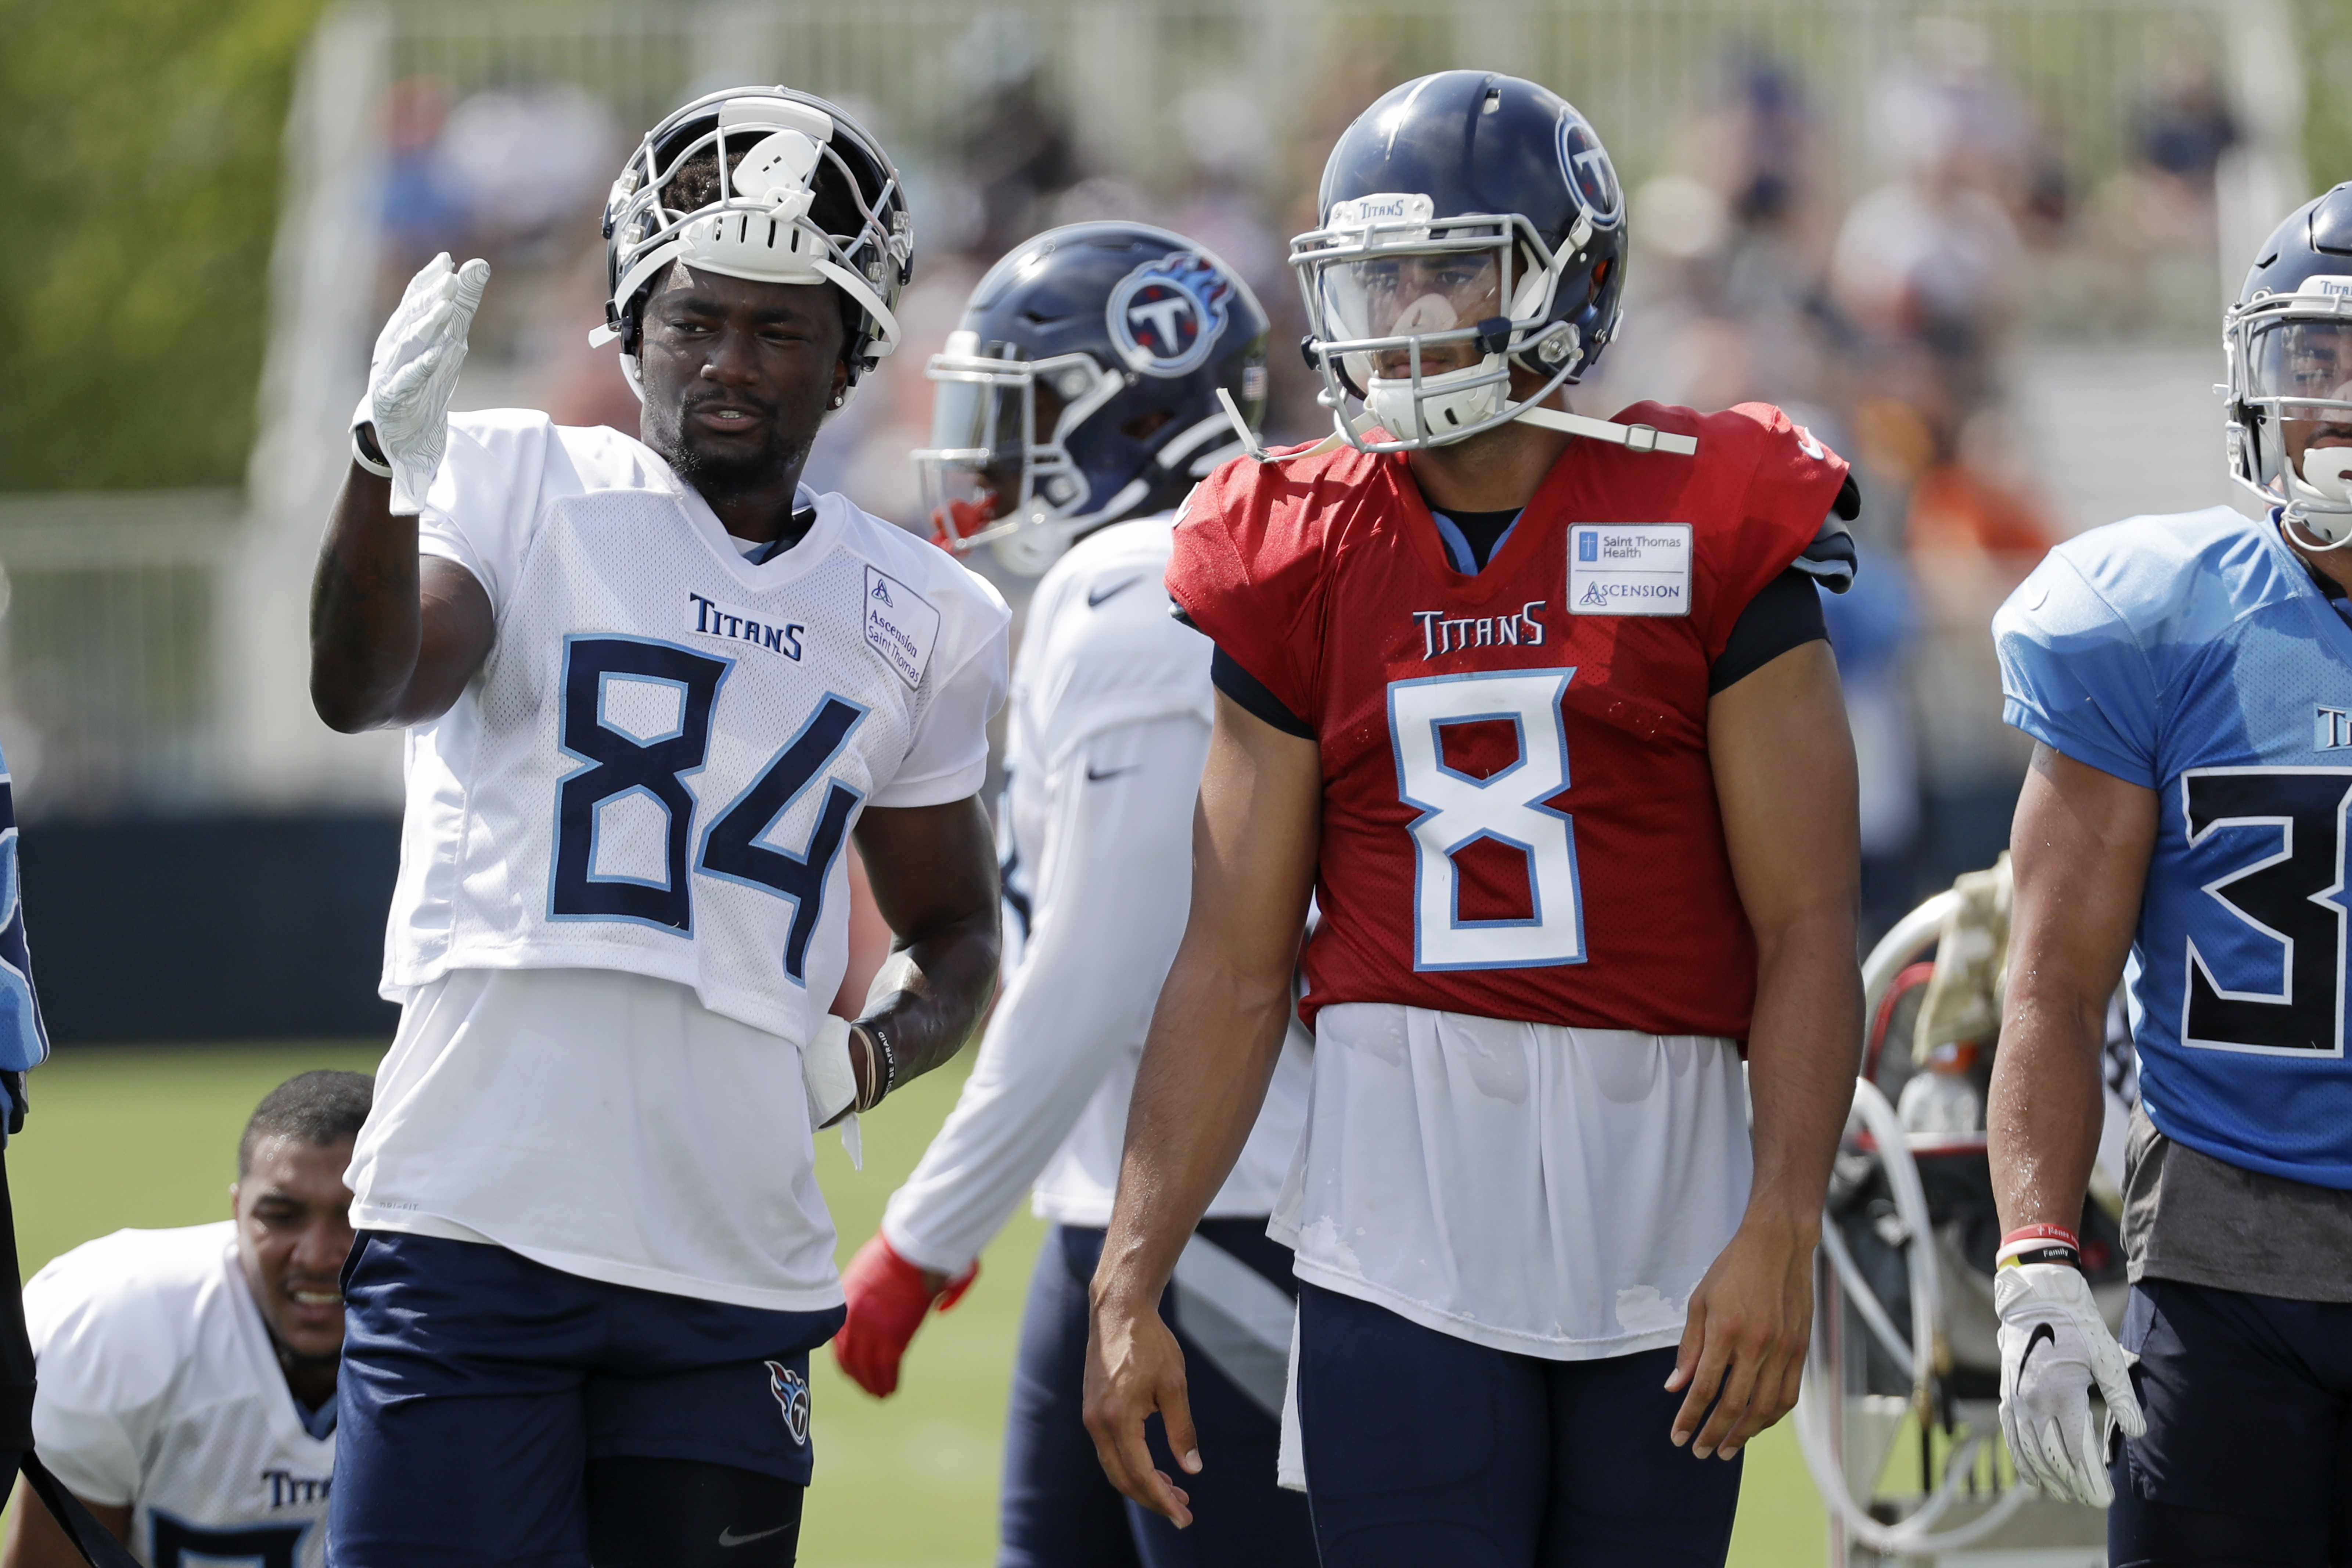 Titans receiver Corey Davis putting on show in training camp